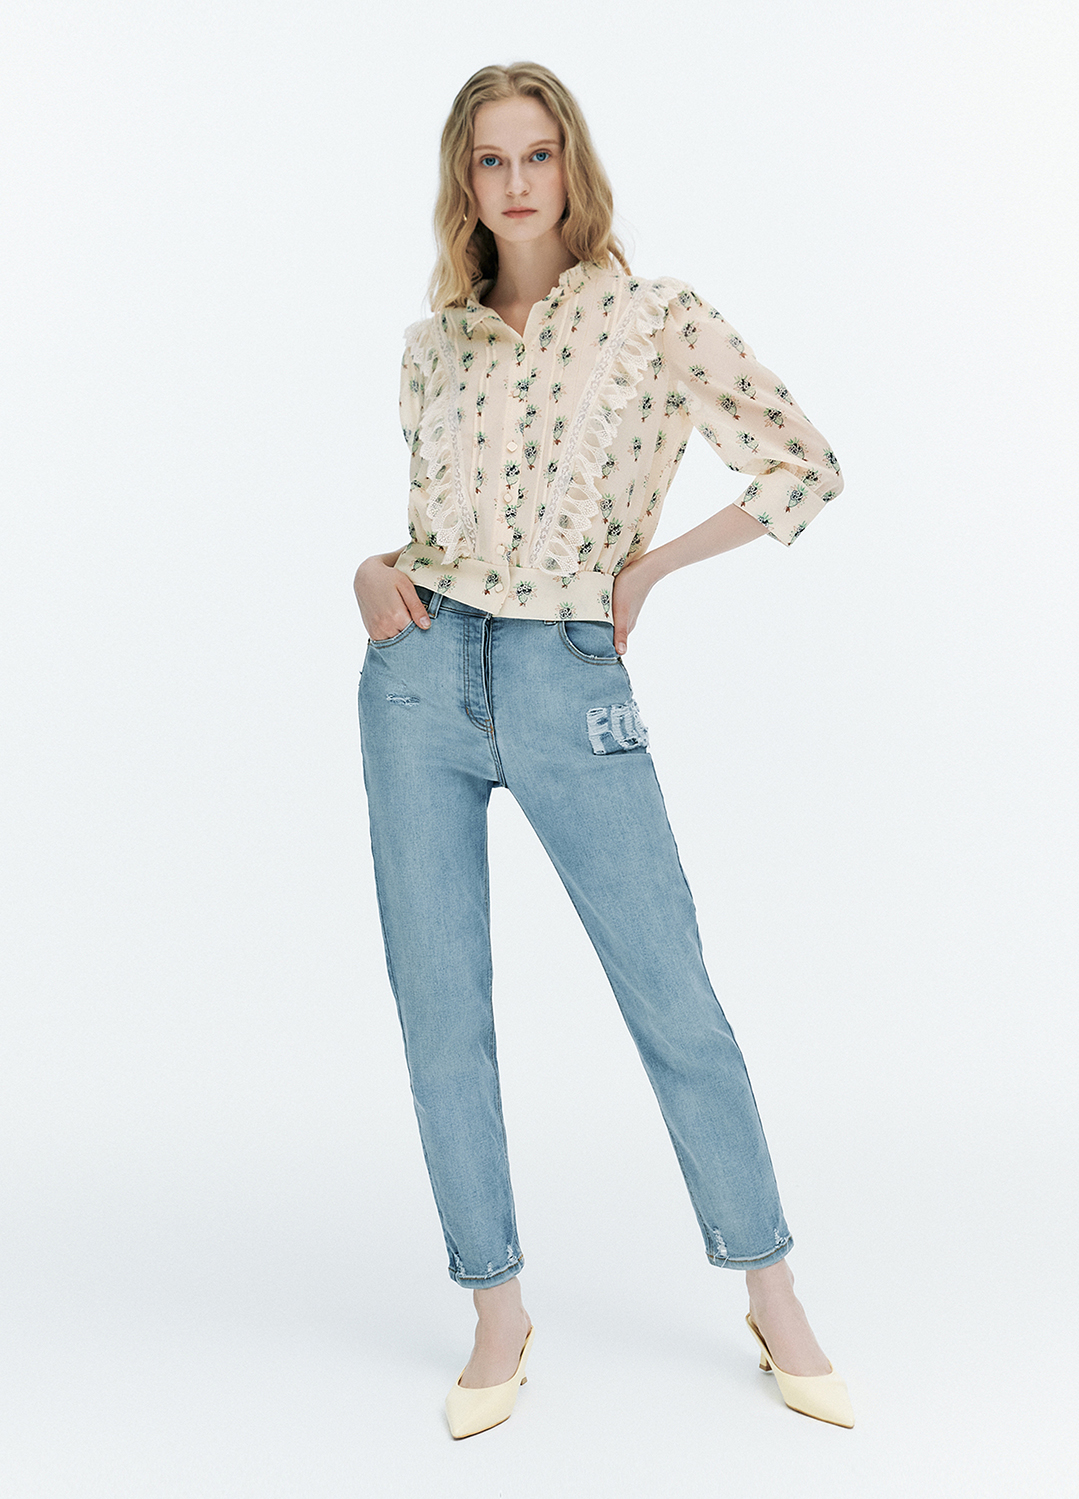 [FAD]Lace trimming flower blouse